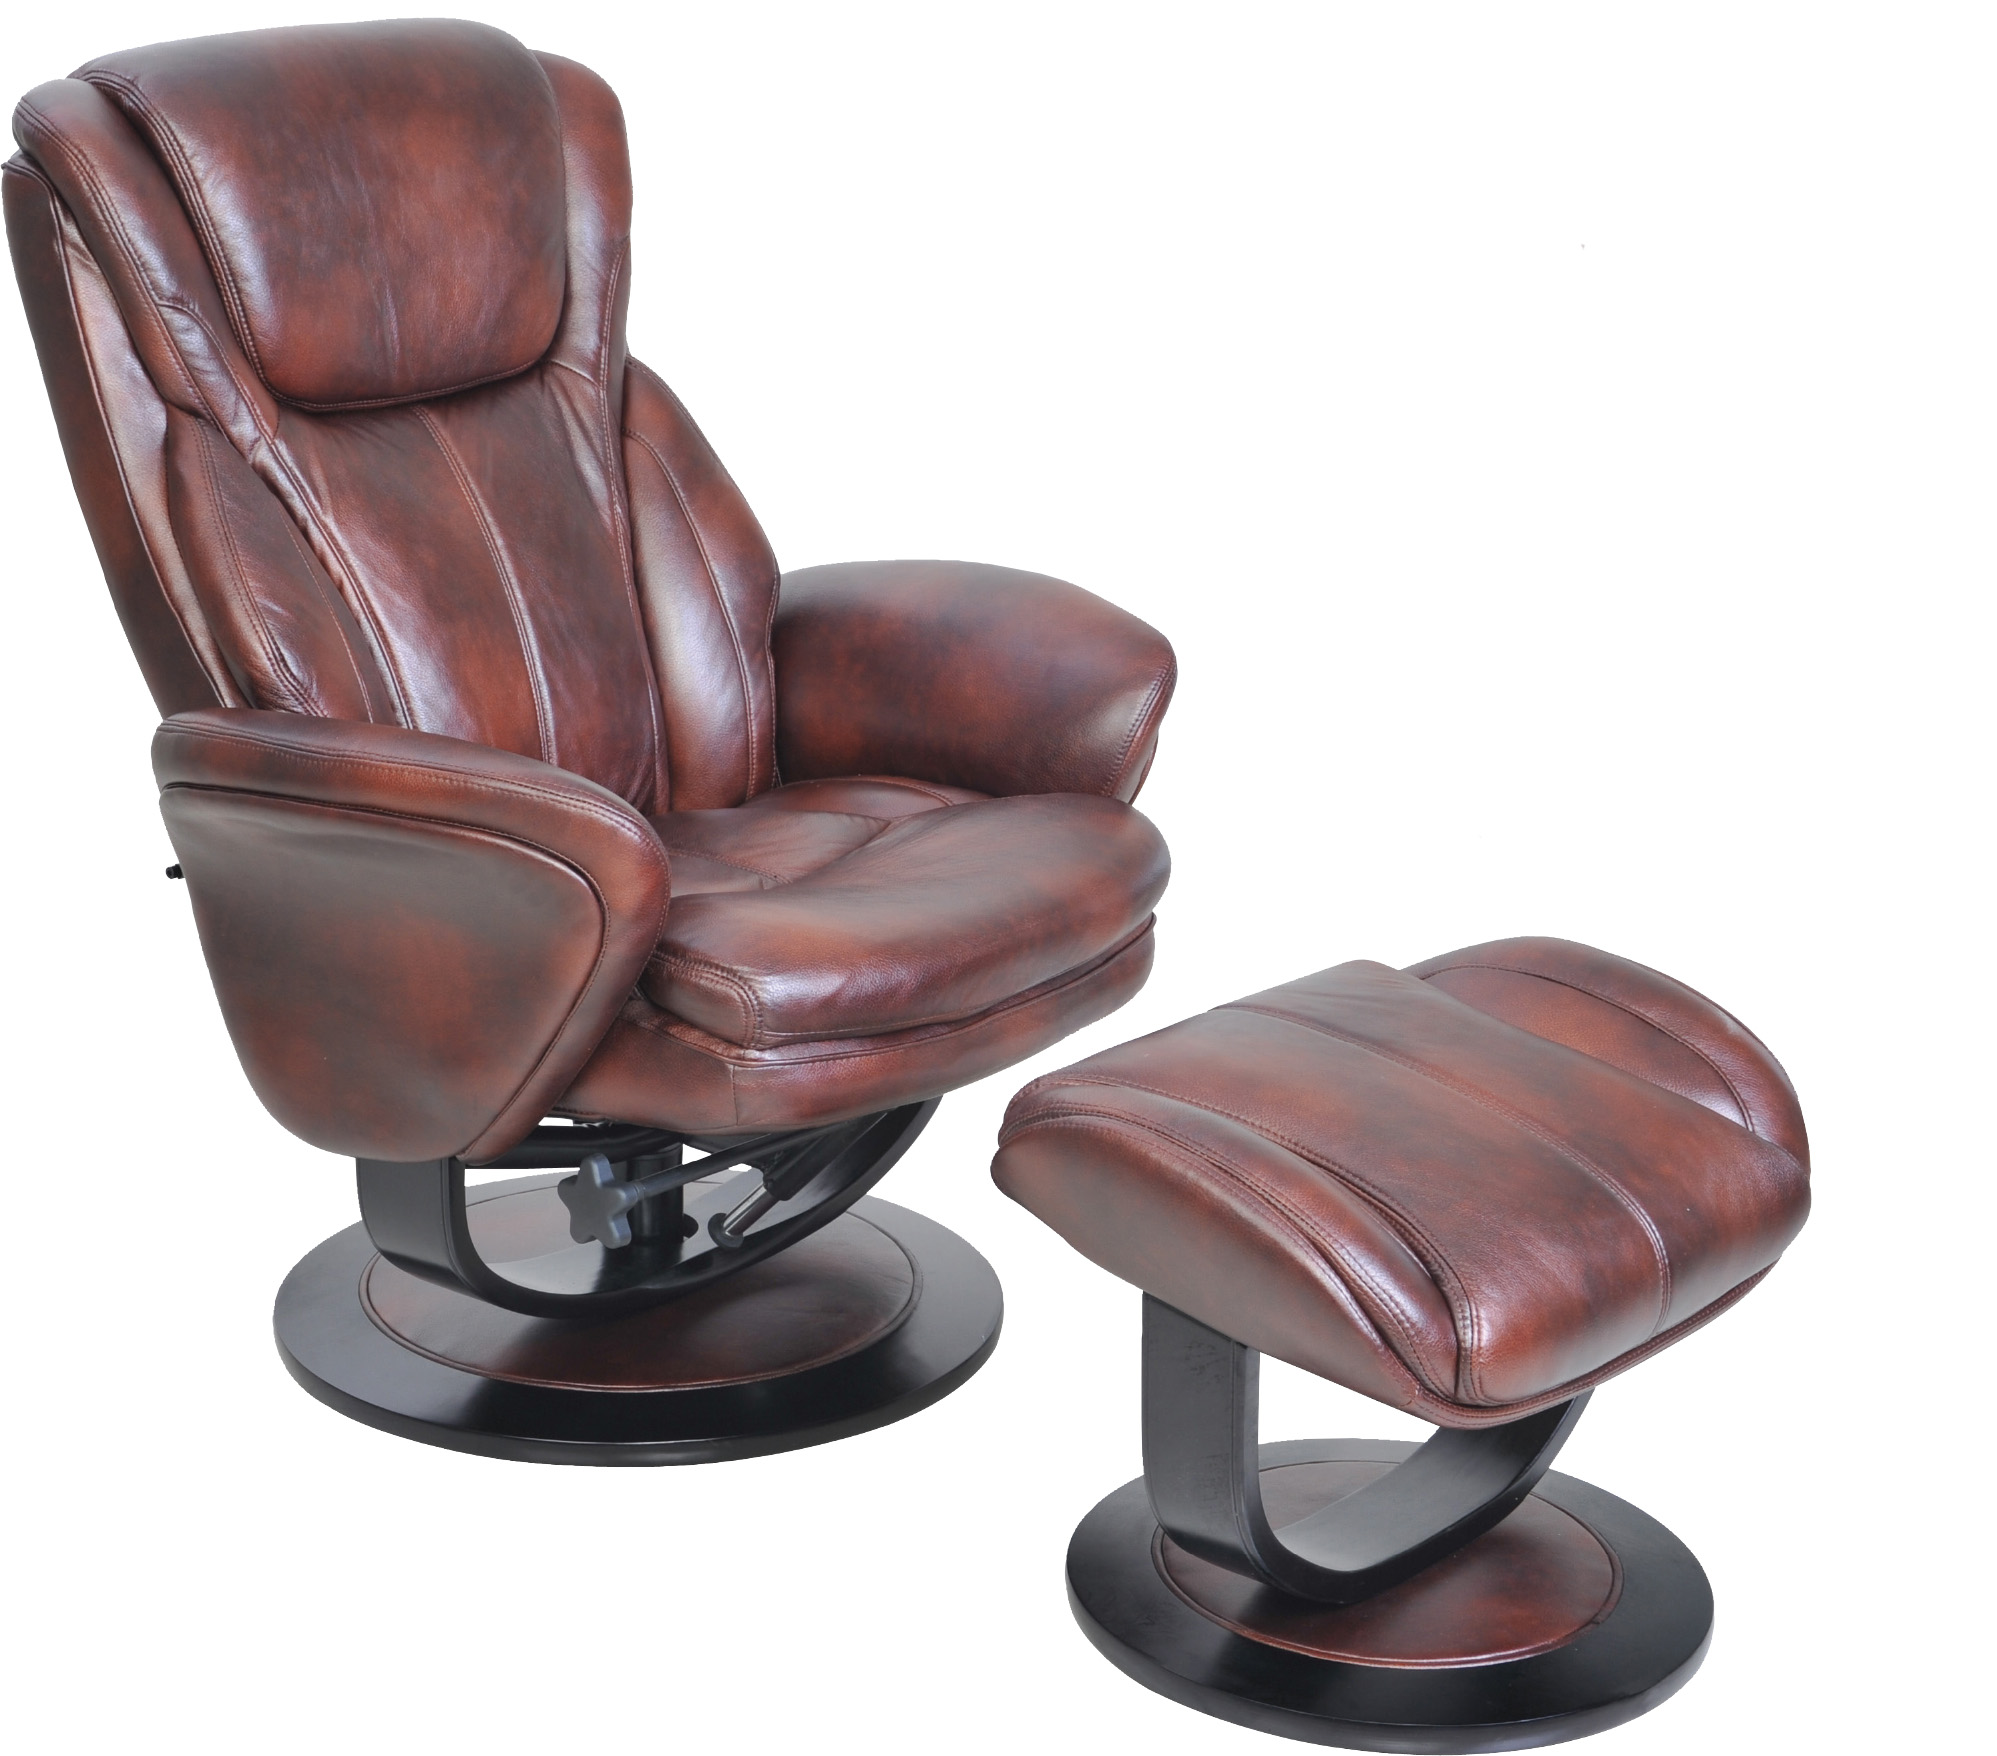 Barcalounger Roma II Recliner Chair and Ottoman Leather Recliner Chair Furniture Lounge